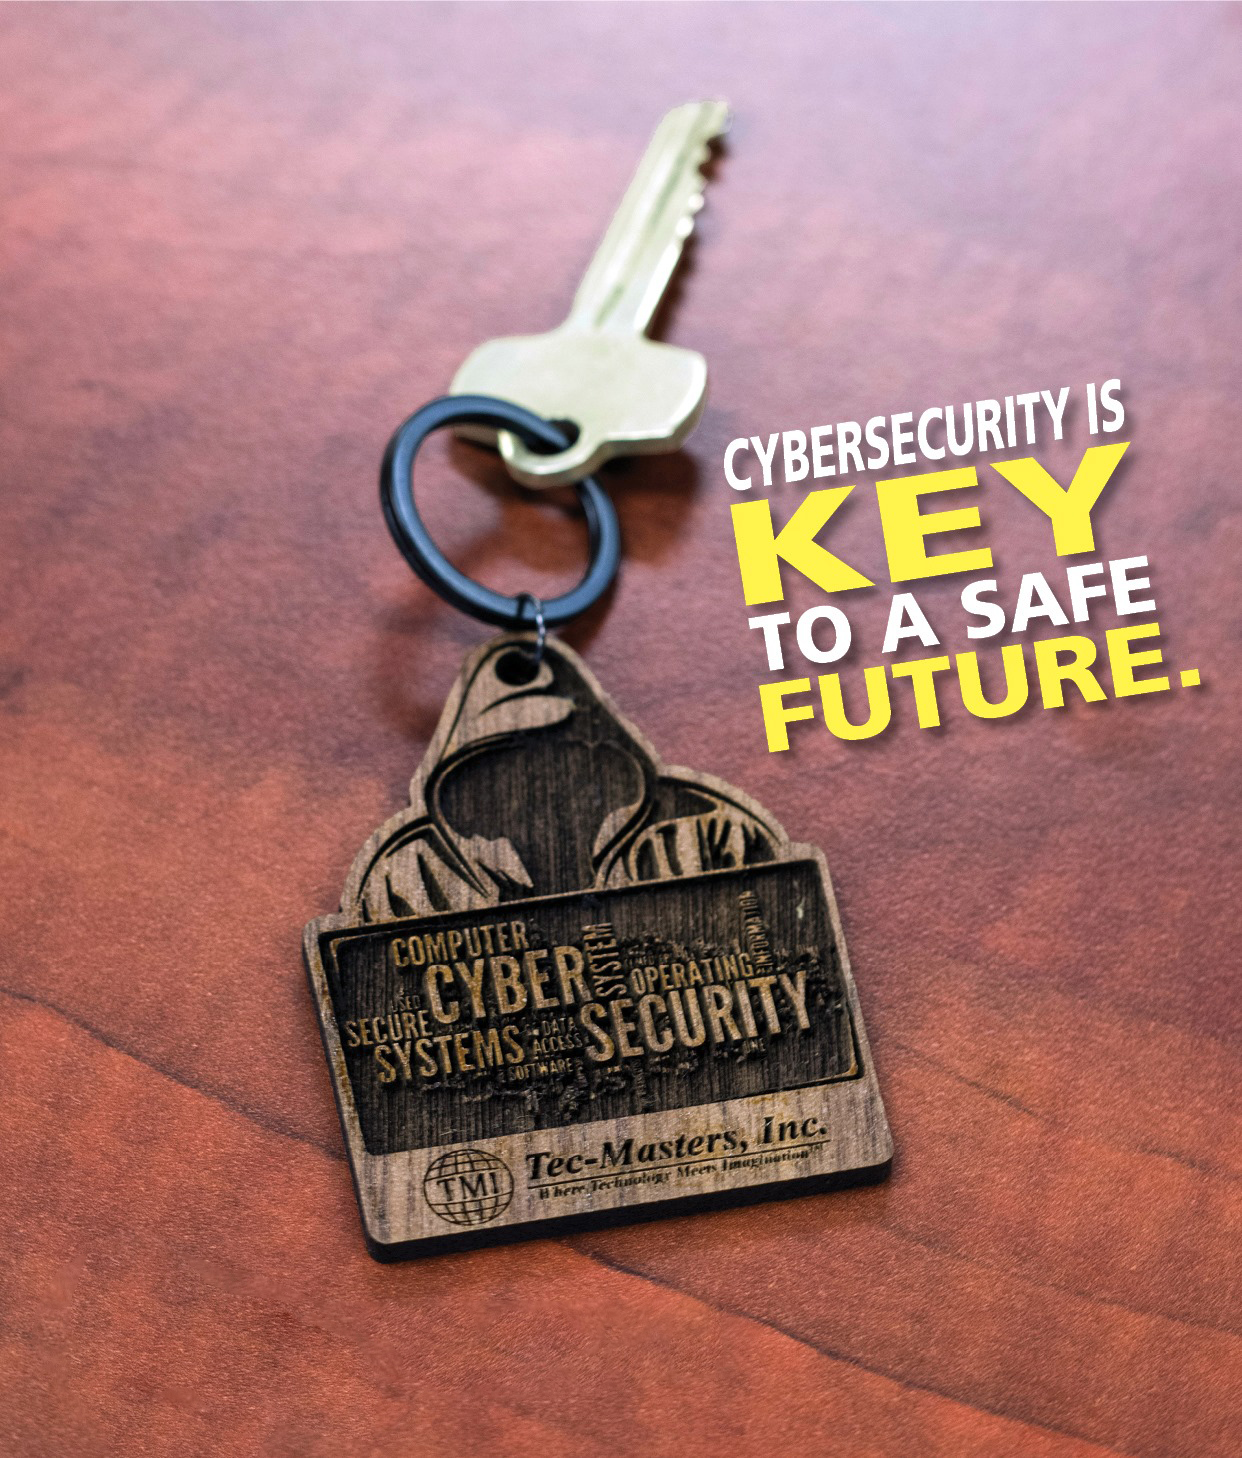 Tec-Masters cbersecurity is key to a safe future key-chain